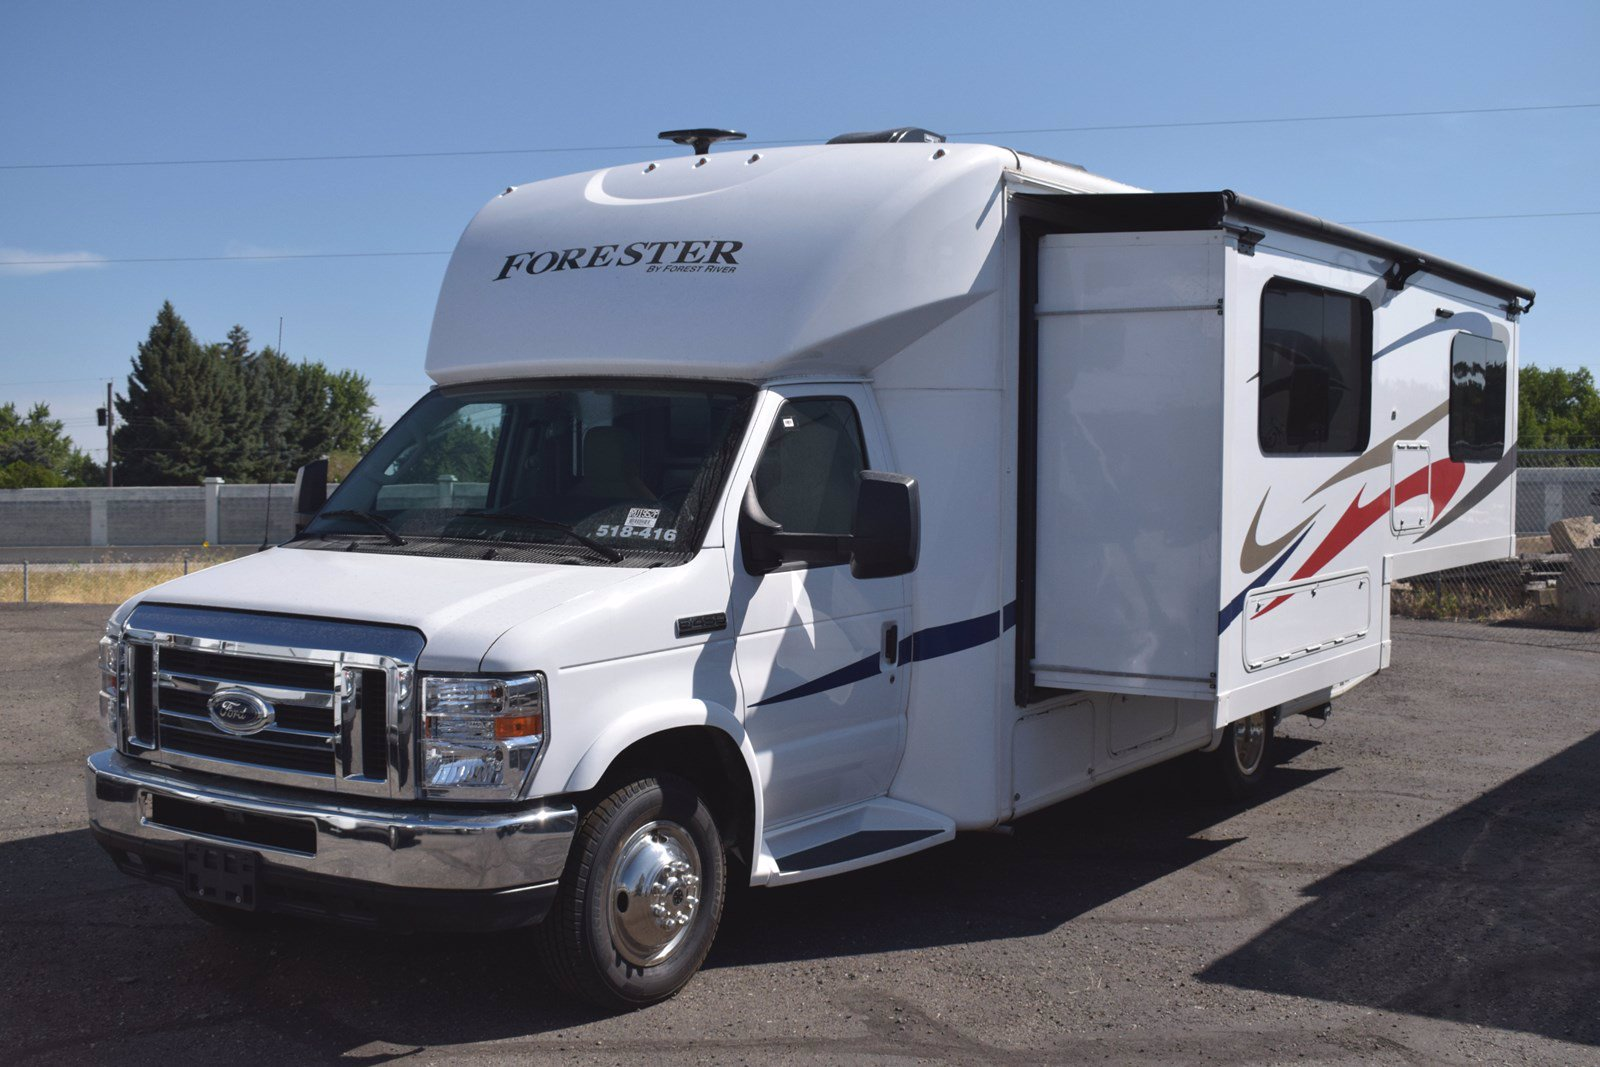 Pre-Owned 2018 FOREST RIVER FORESTER 2431S